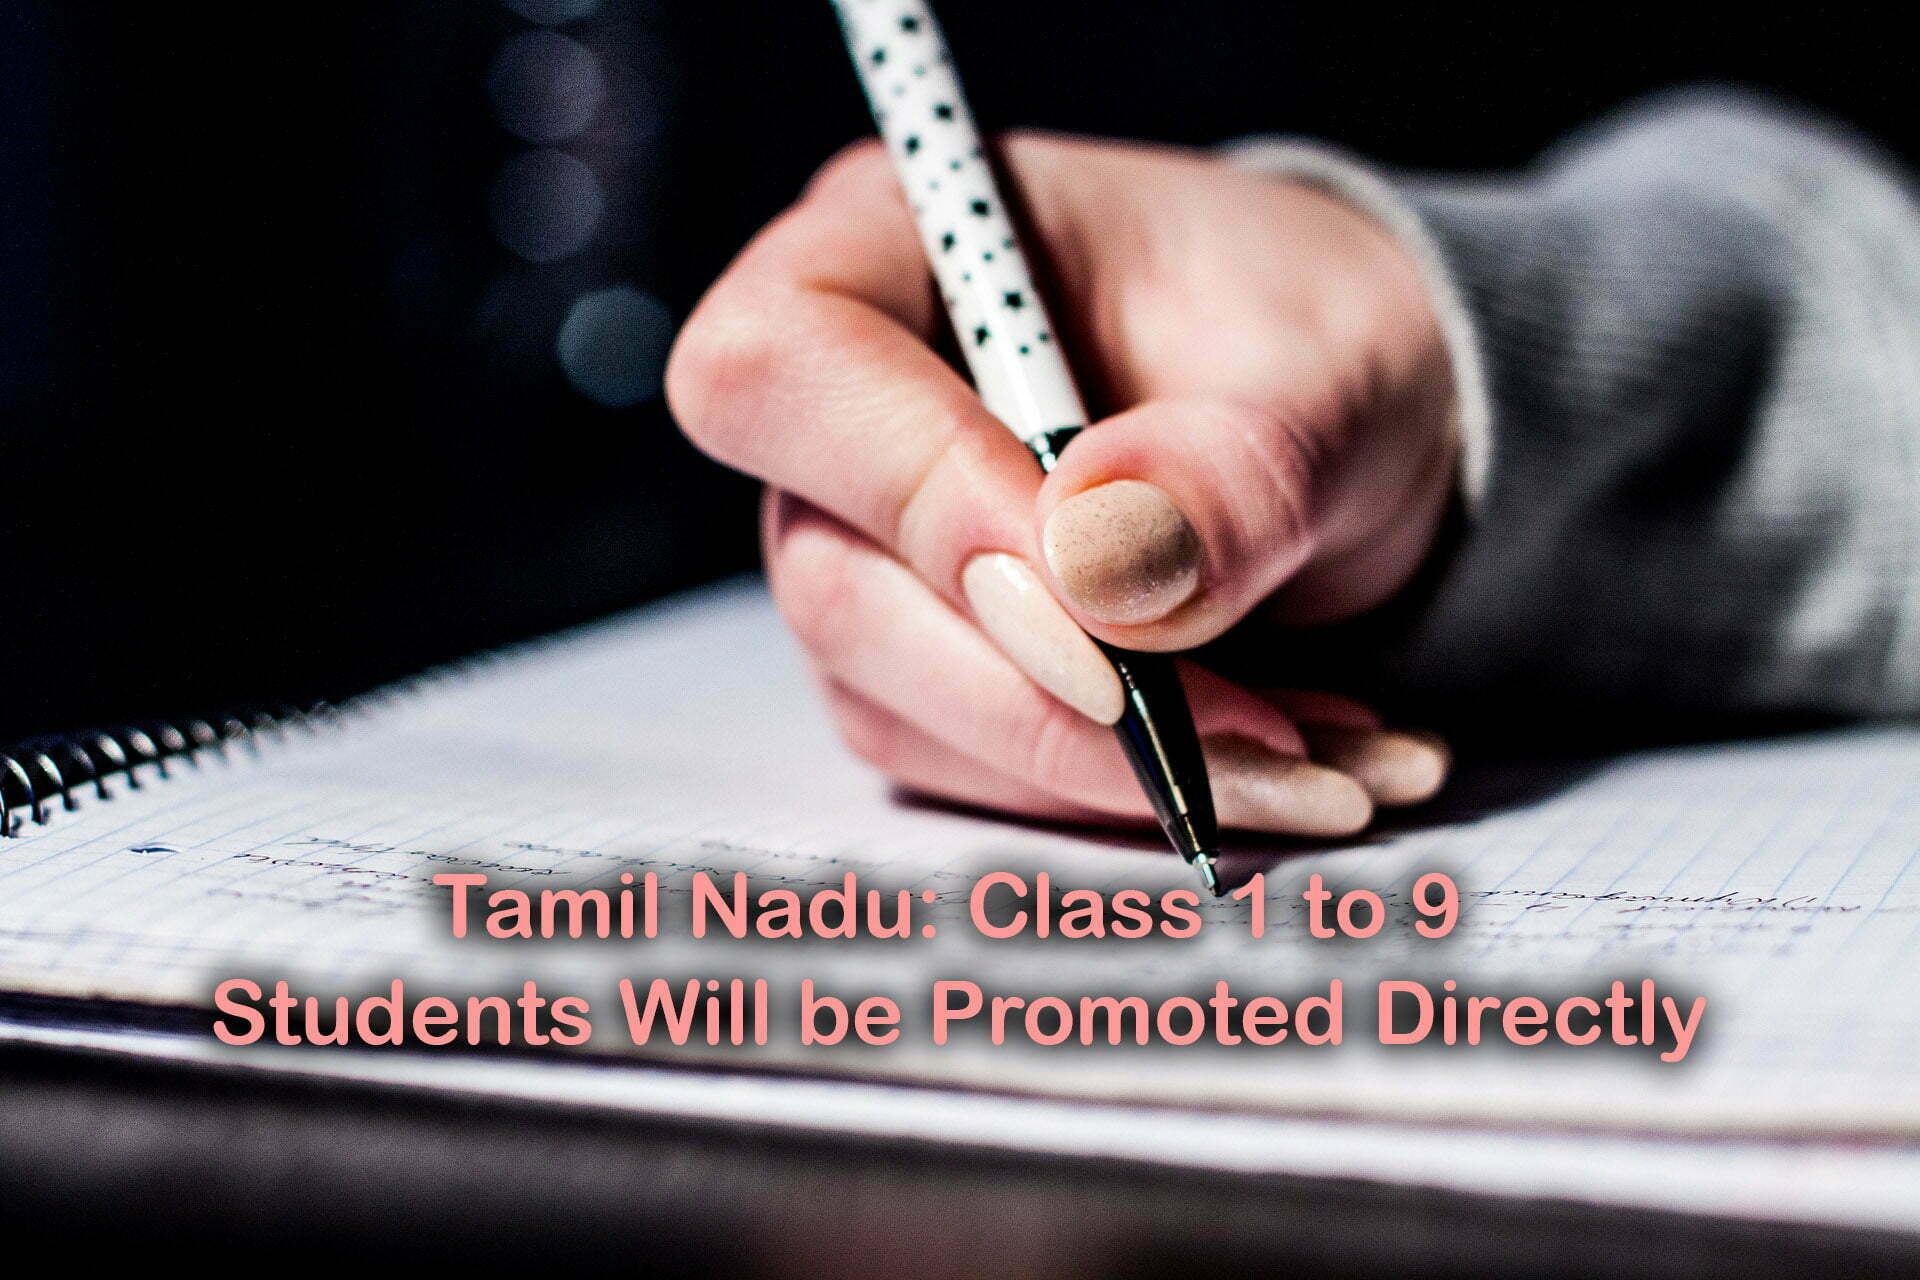 Tamil Nadu Class 1 to 9 Students Promoted Directly